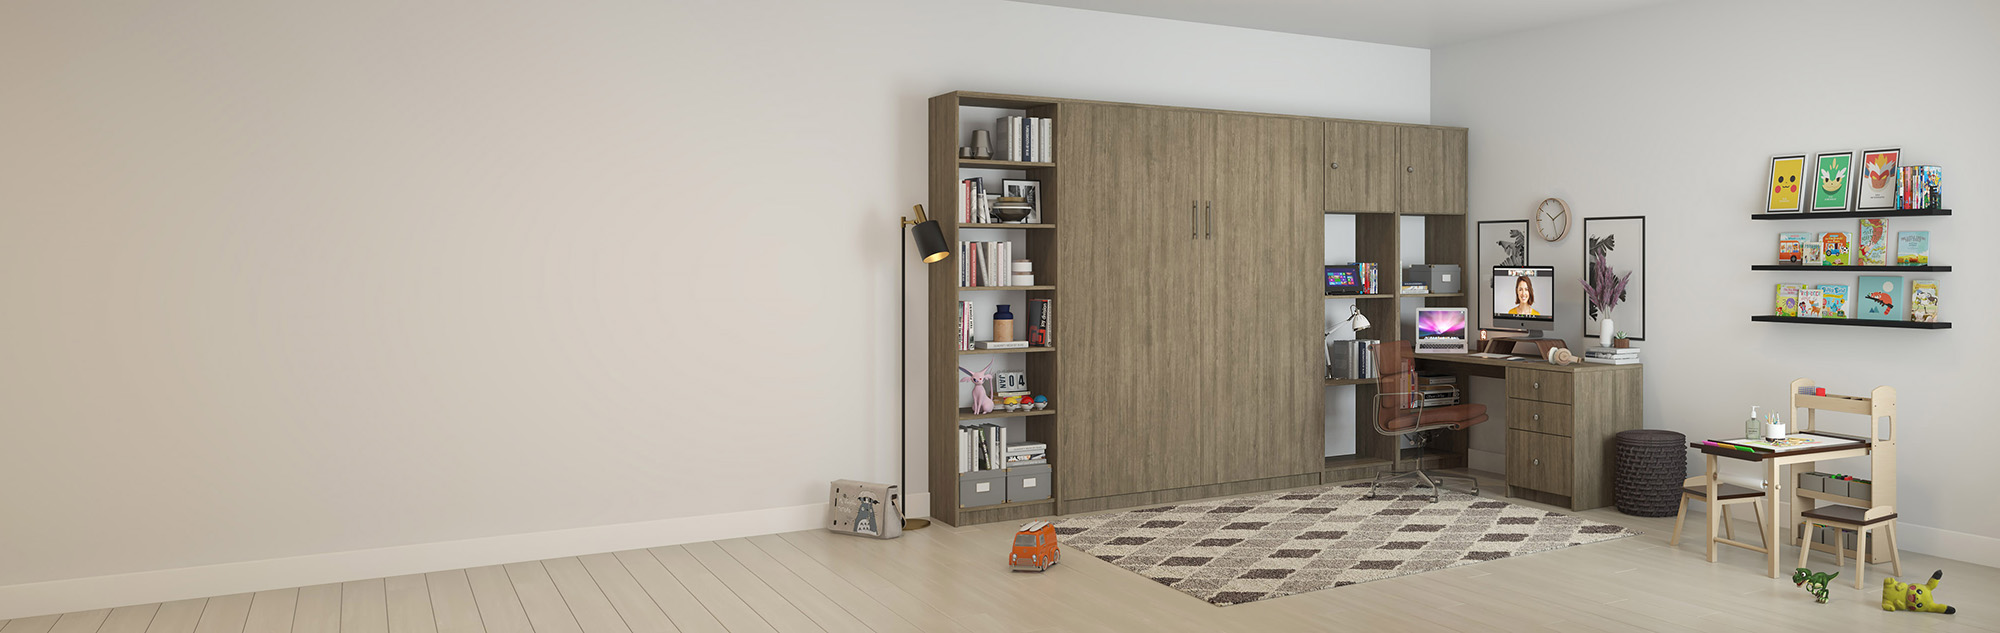 Murphy Wall Beds Work from Home